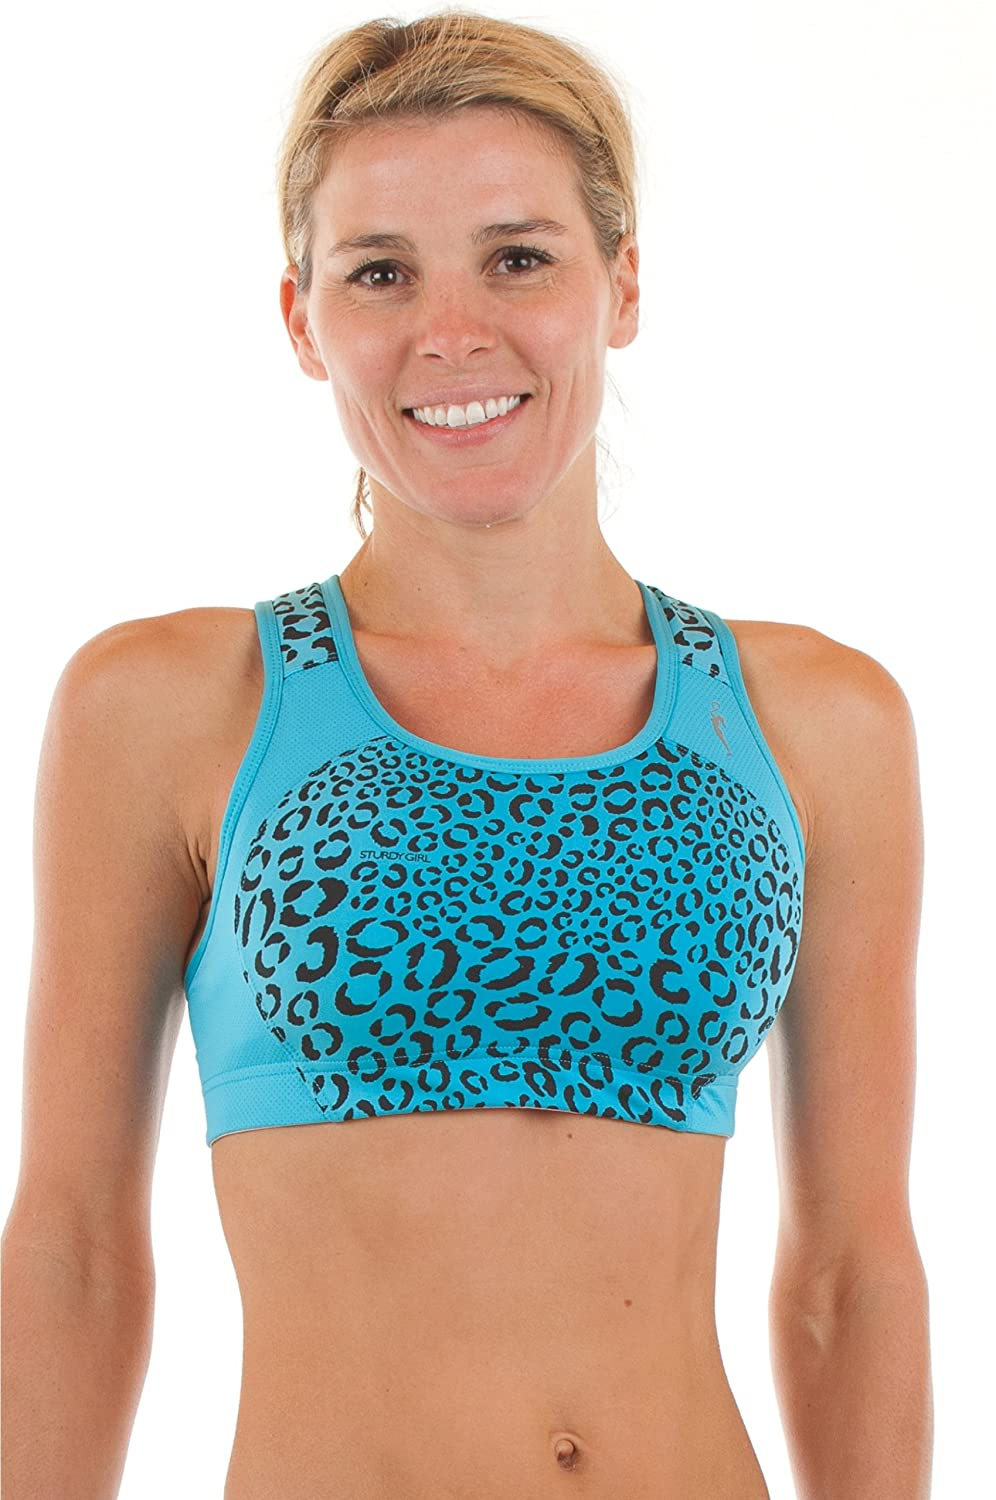 392039ec4 Sturdy Girl Sports Santa Monica Bra at Amazon Women s Clothing store  Sports  Bras